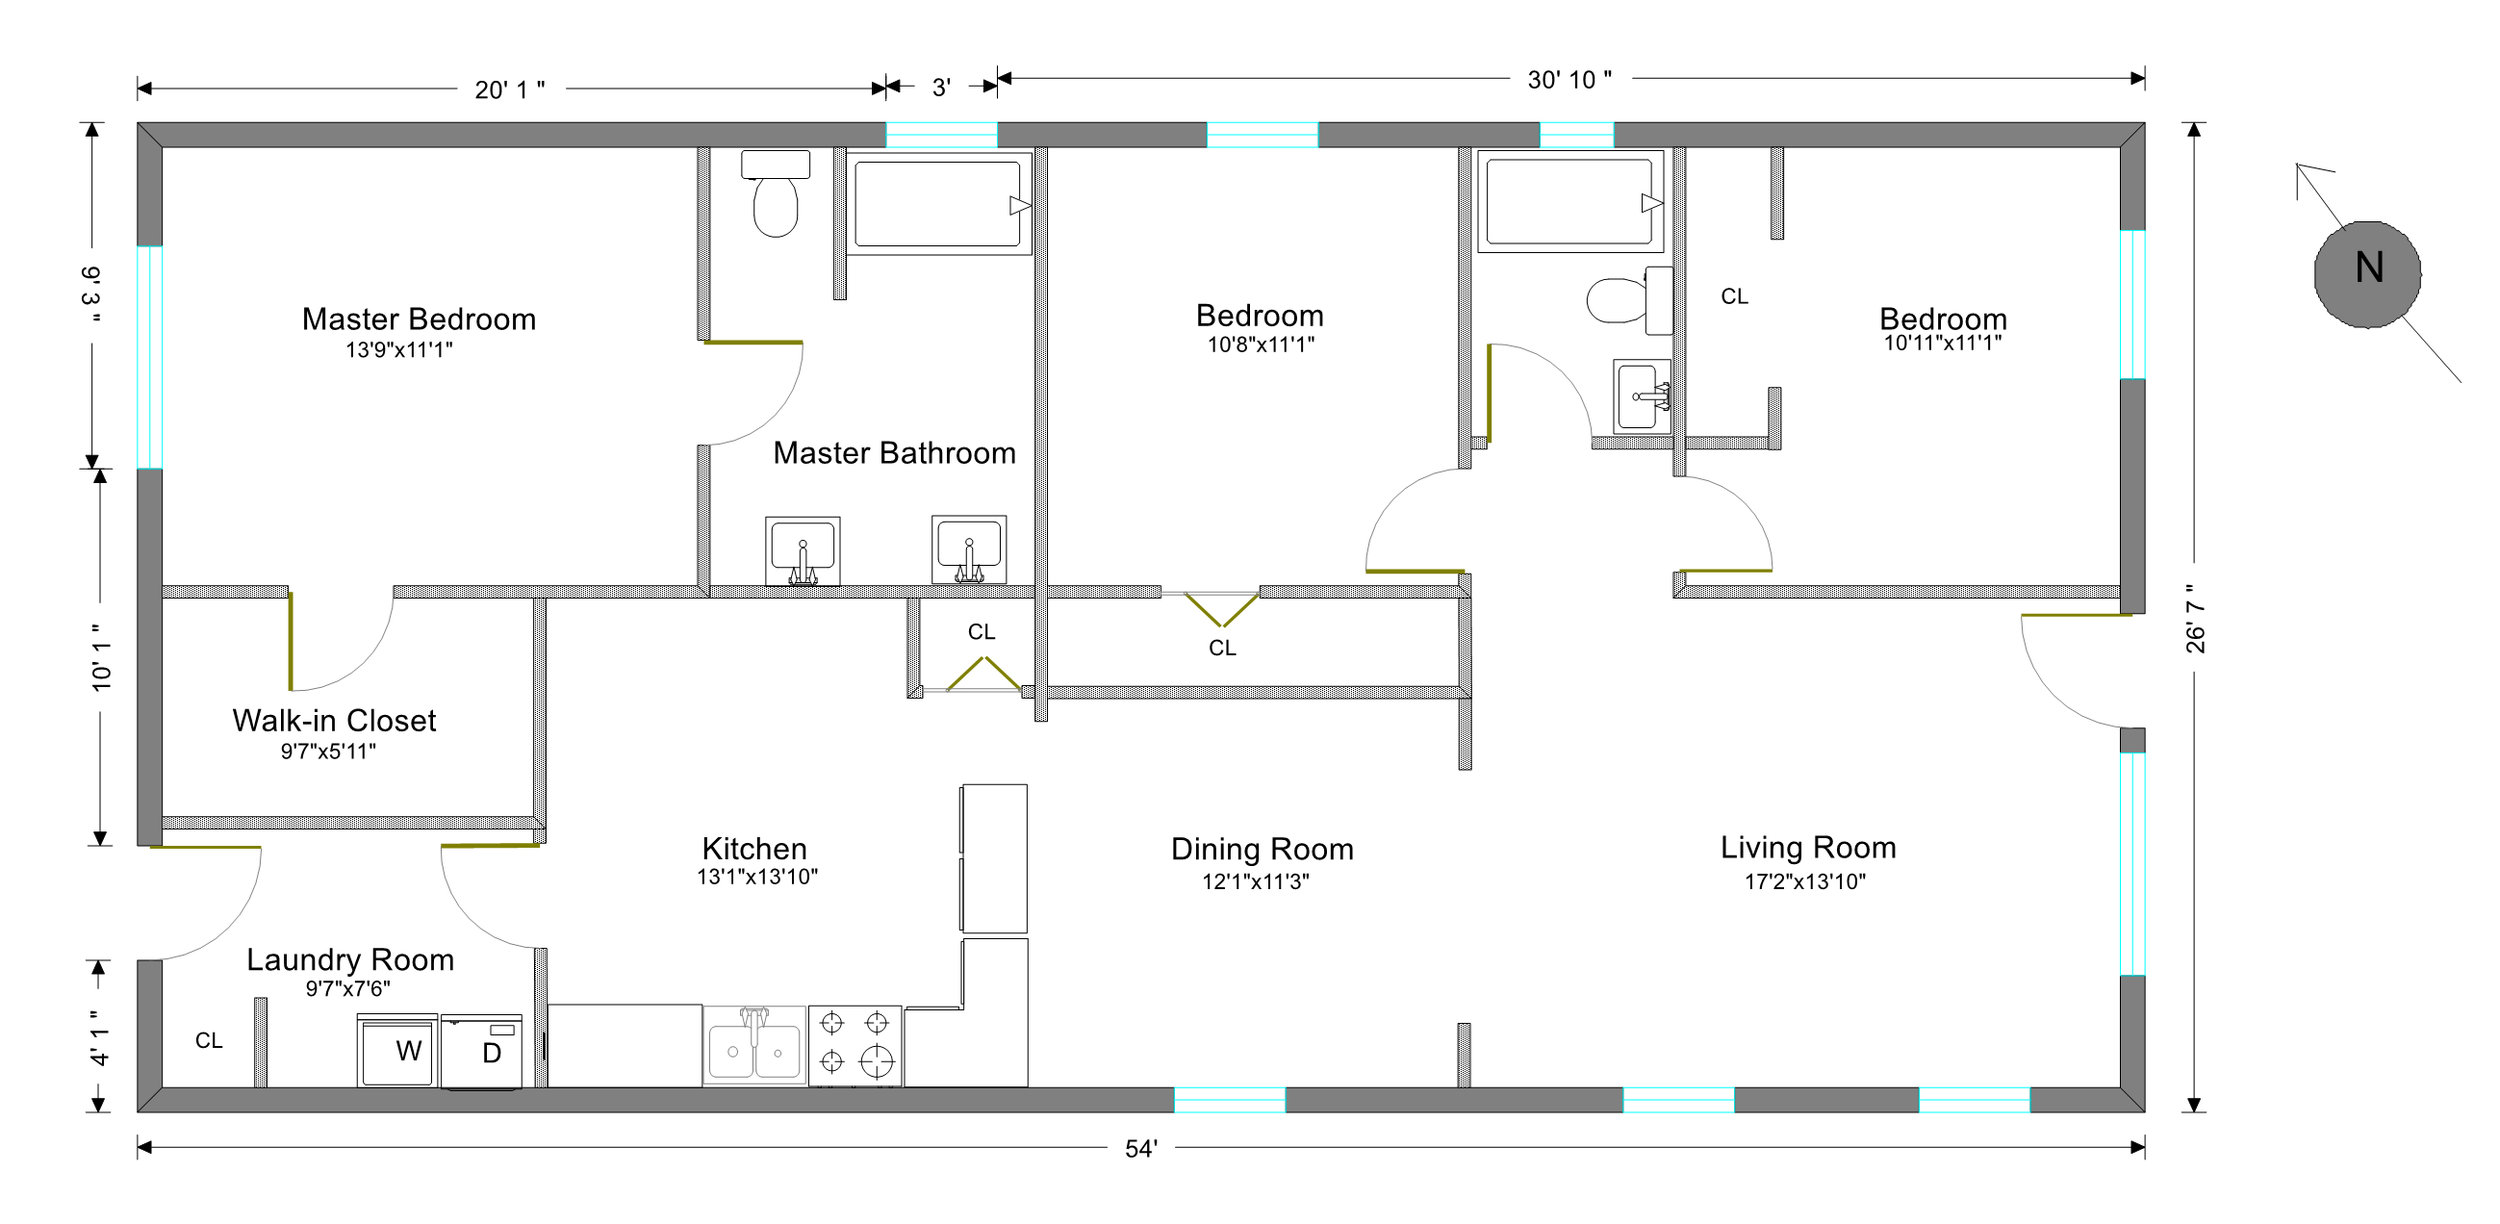 2d floor plan real estate